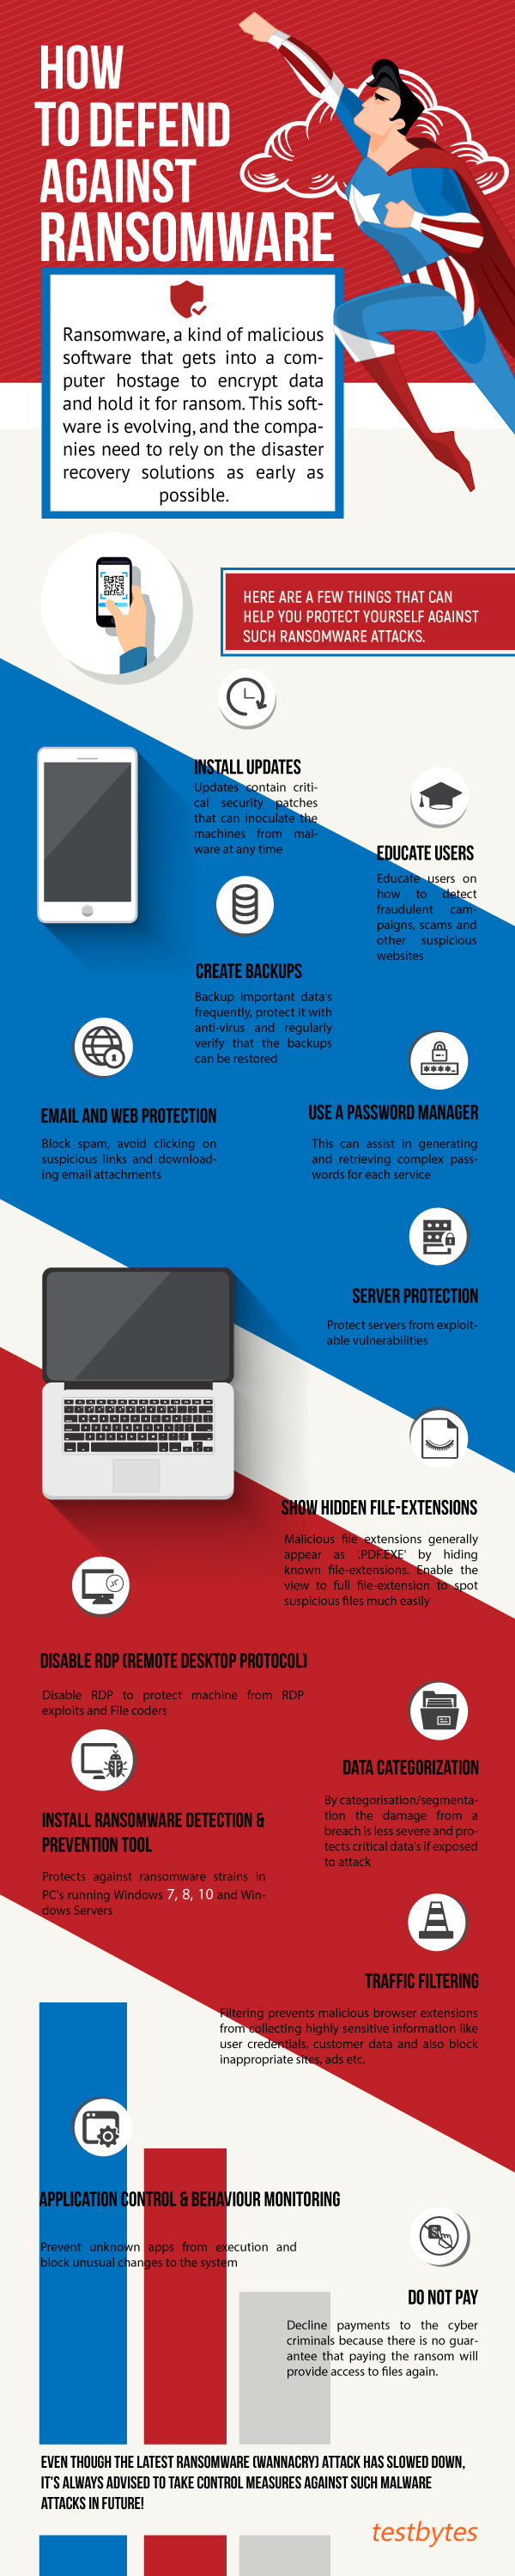 How-to-Defend-Against-Ransomware-infographic